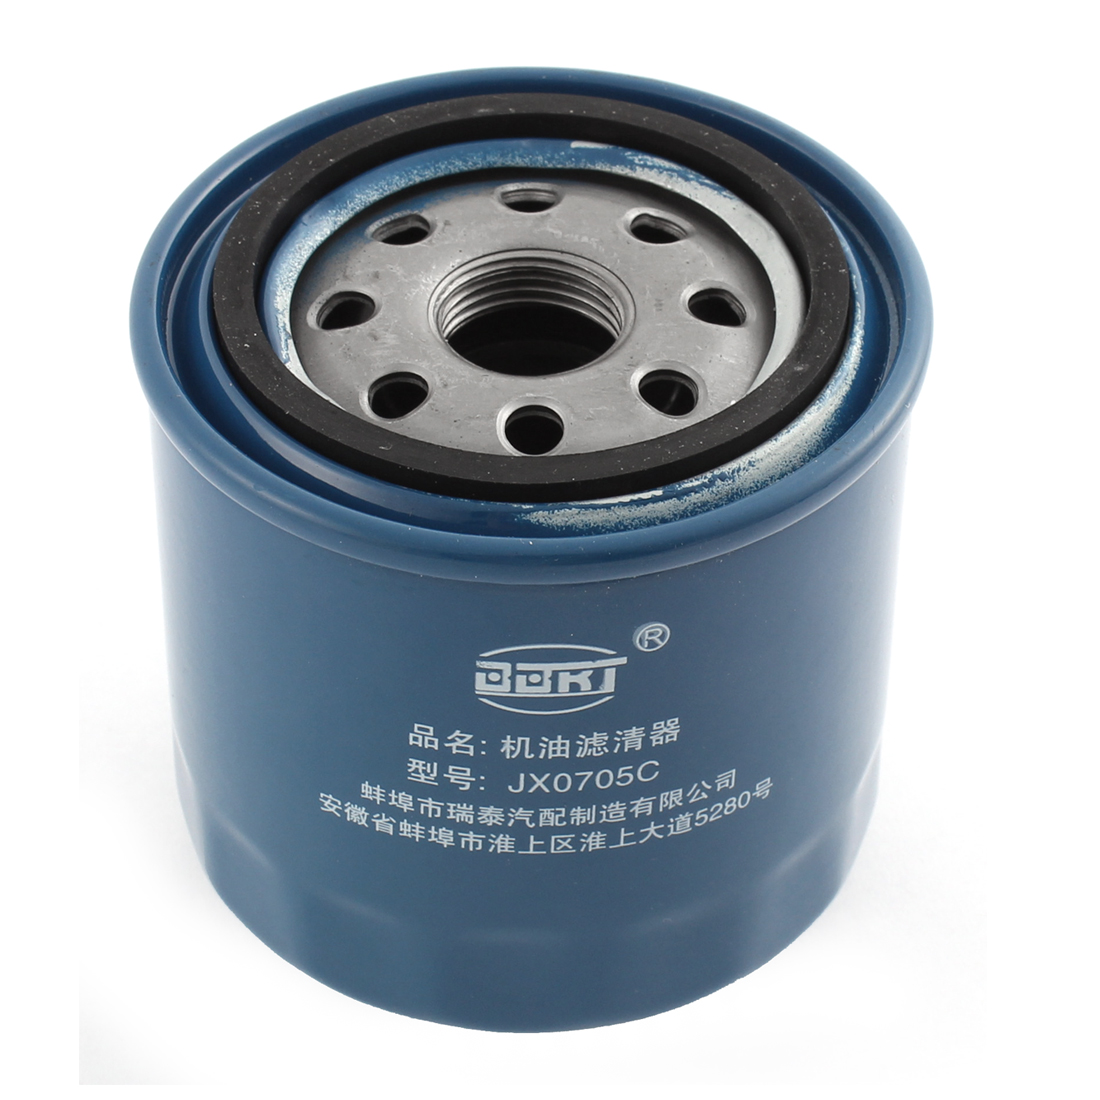 Automotive Blue Engine Oil Filter 26300-35500 for Hyundai